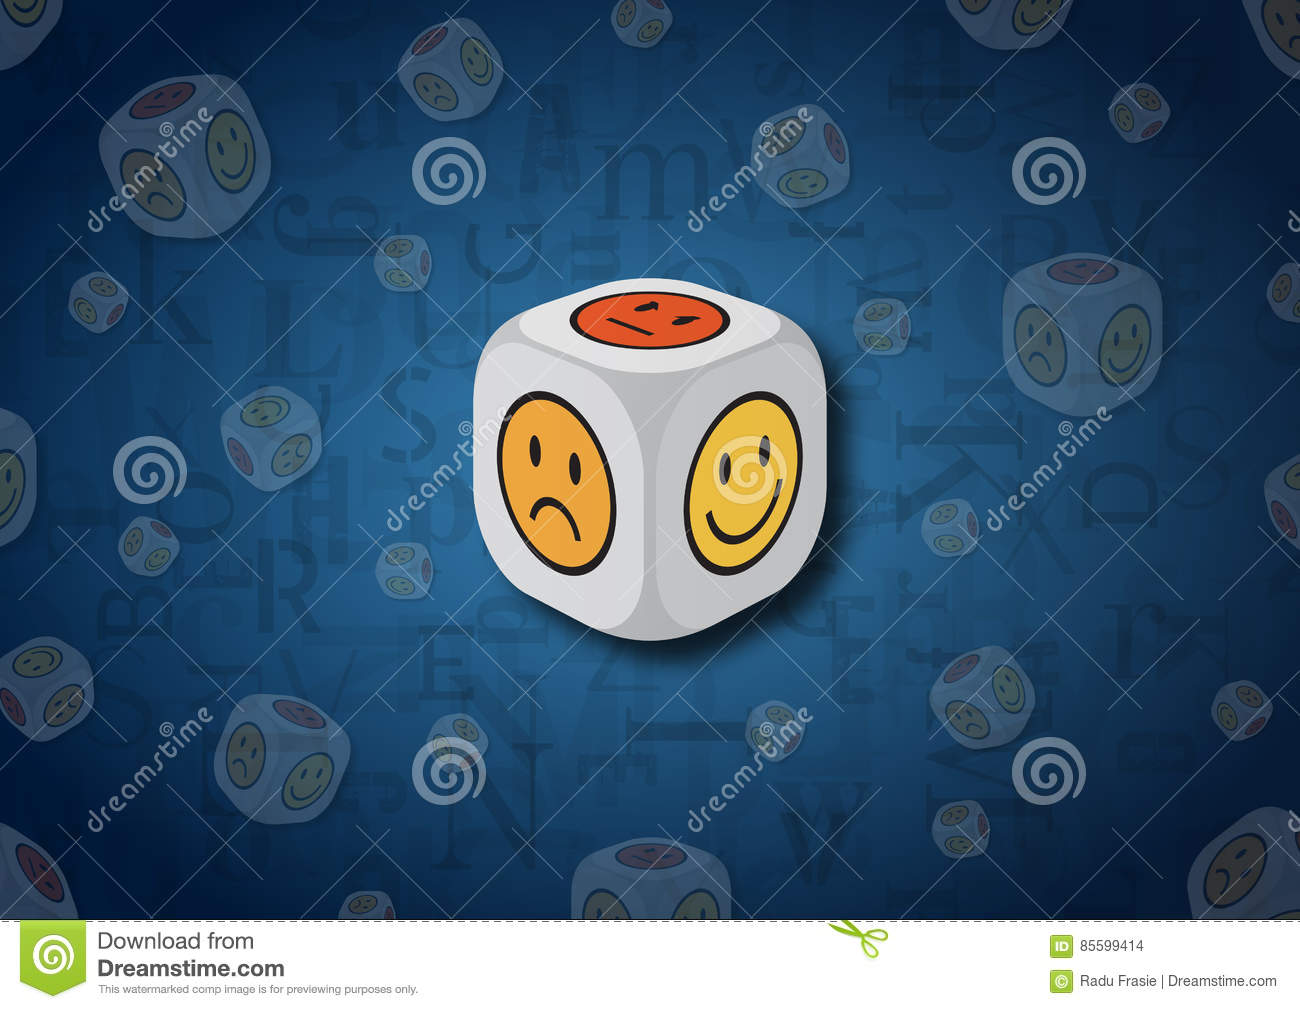 A 3d Illustration Of A Dice With Emotion Symbols Stock Illustration